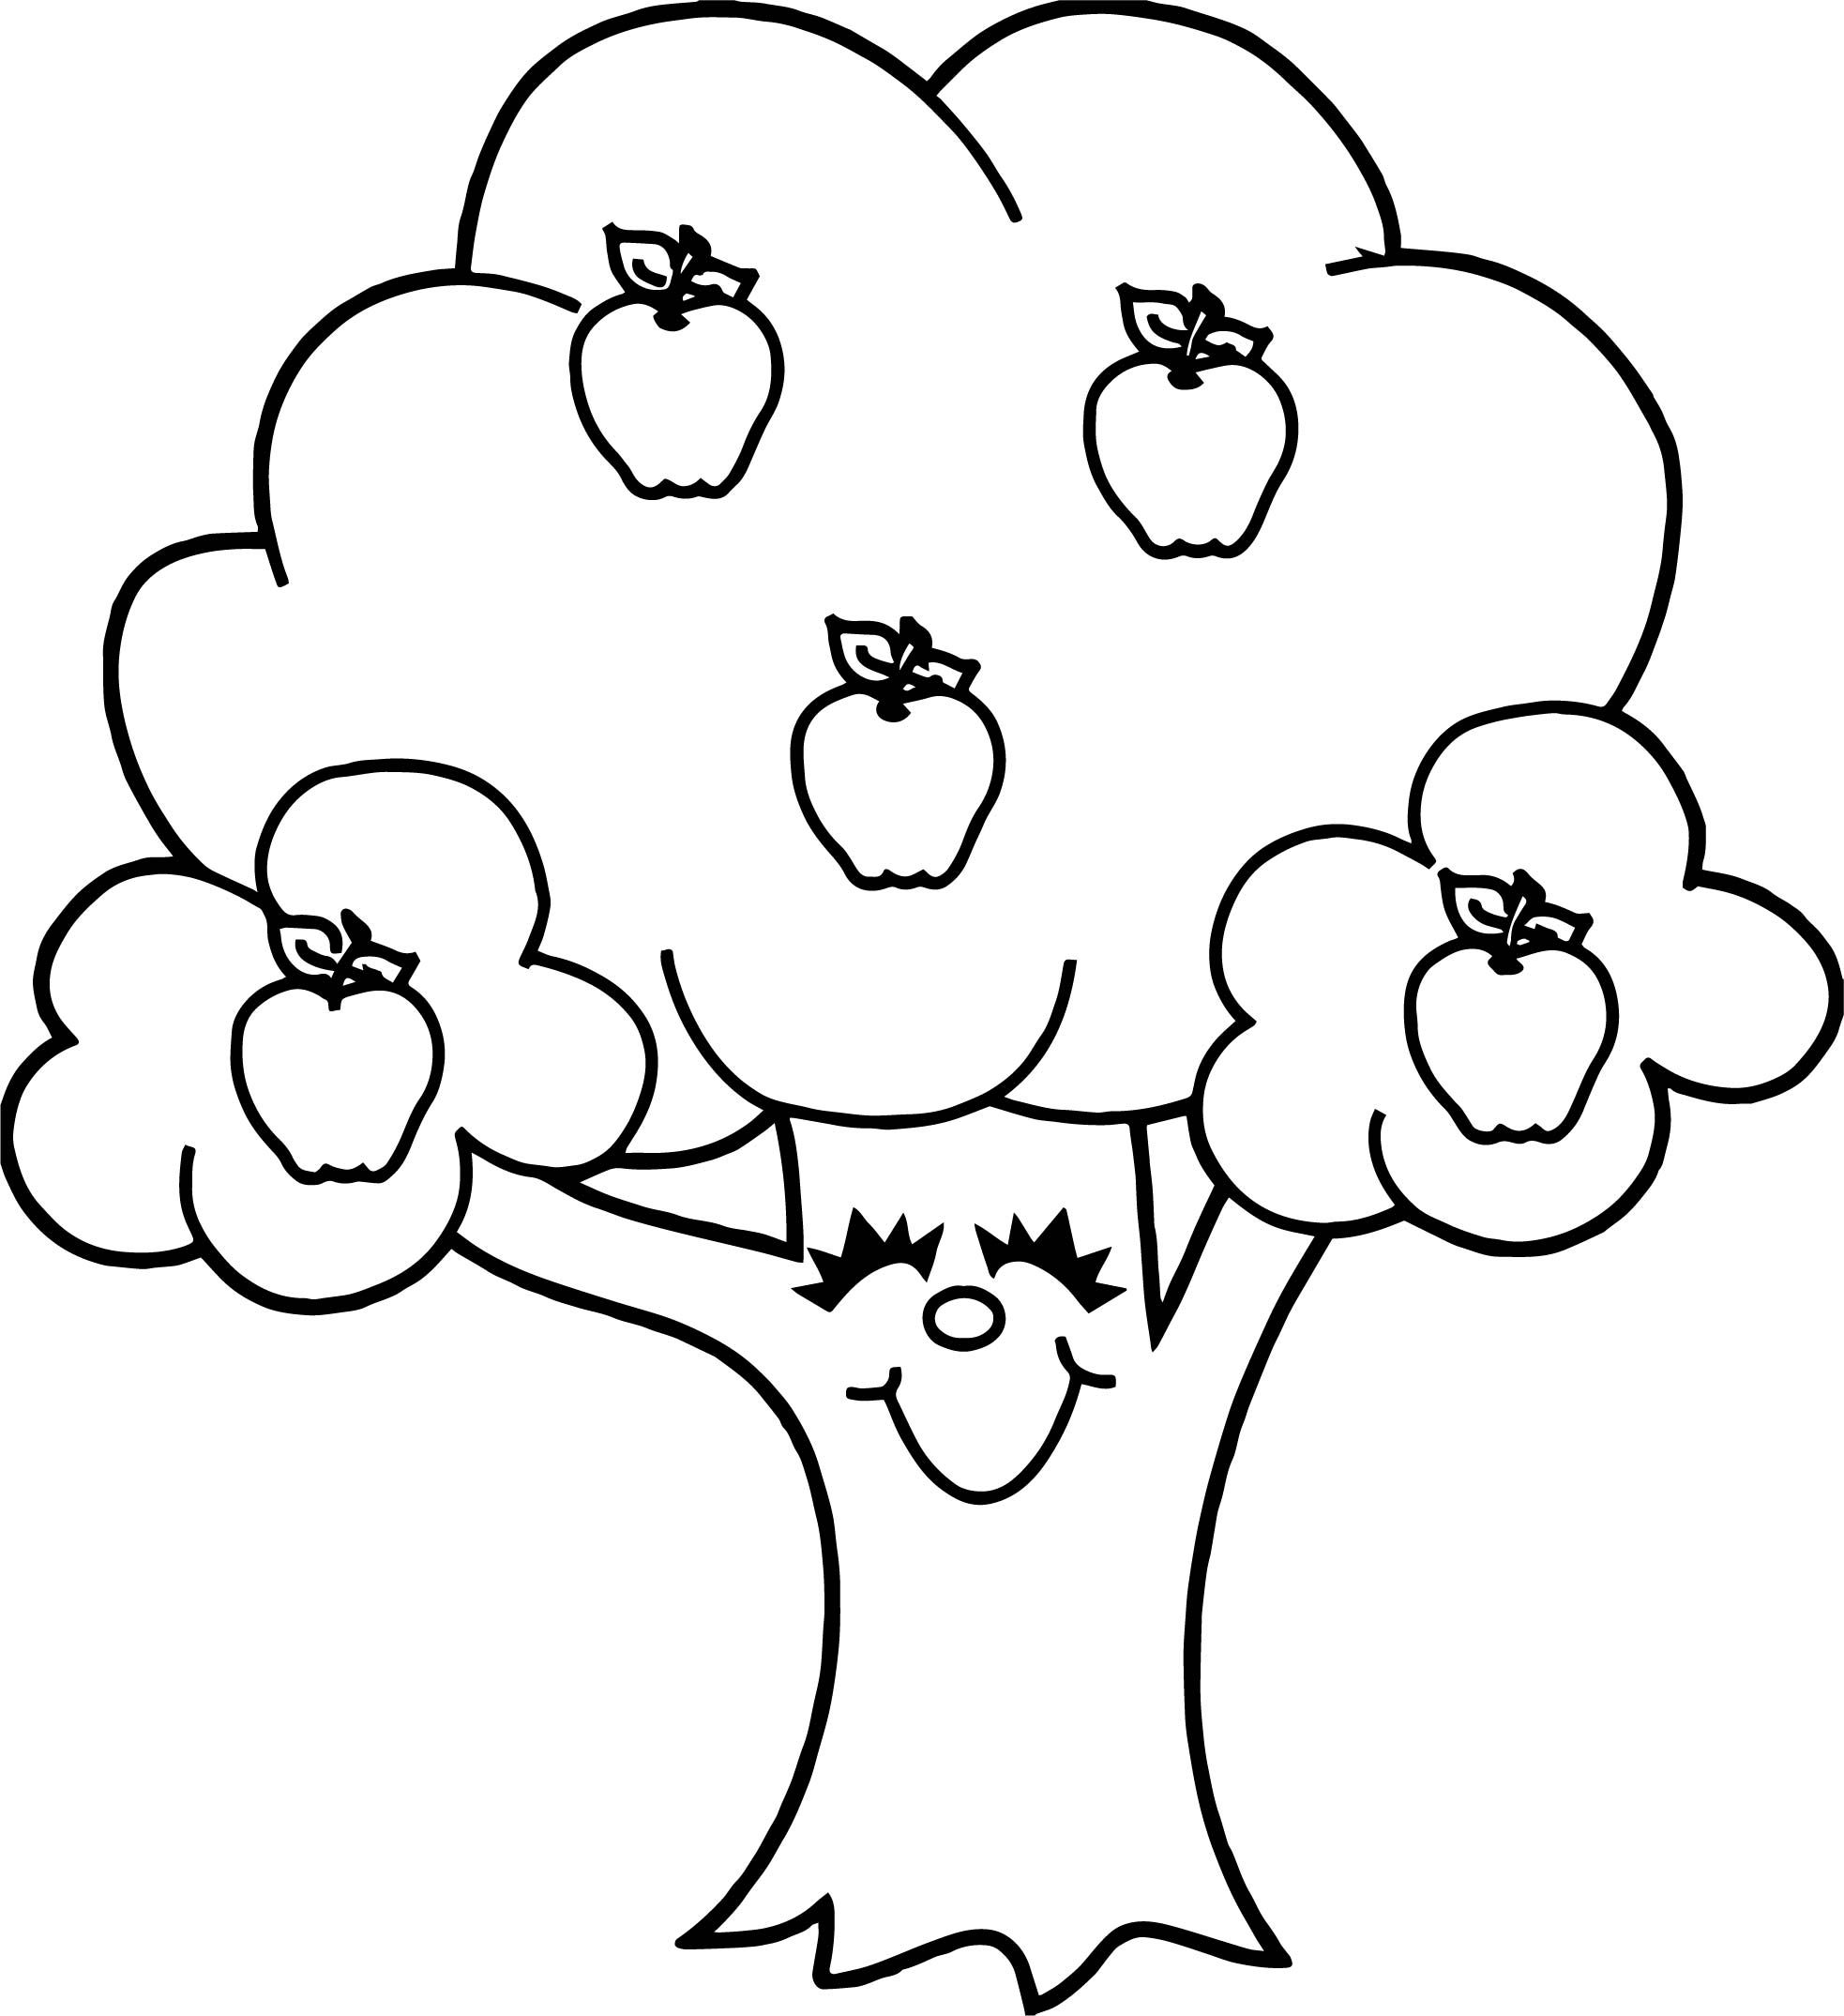 Awesome Funny Apple Tree Coloring Page Tree Coloring Page Apple Coloring Pages Emoji Coloring Pages